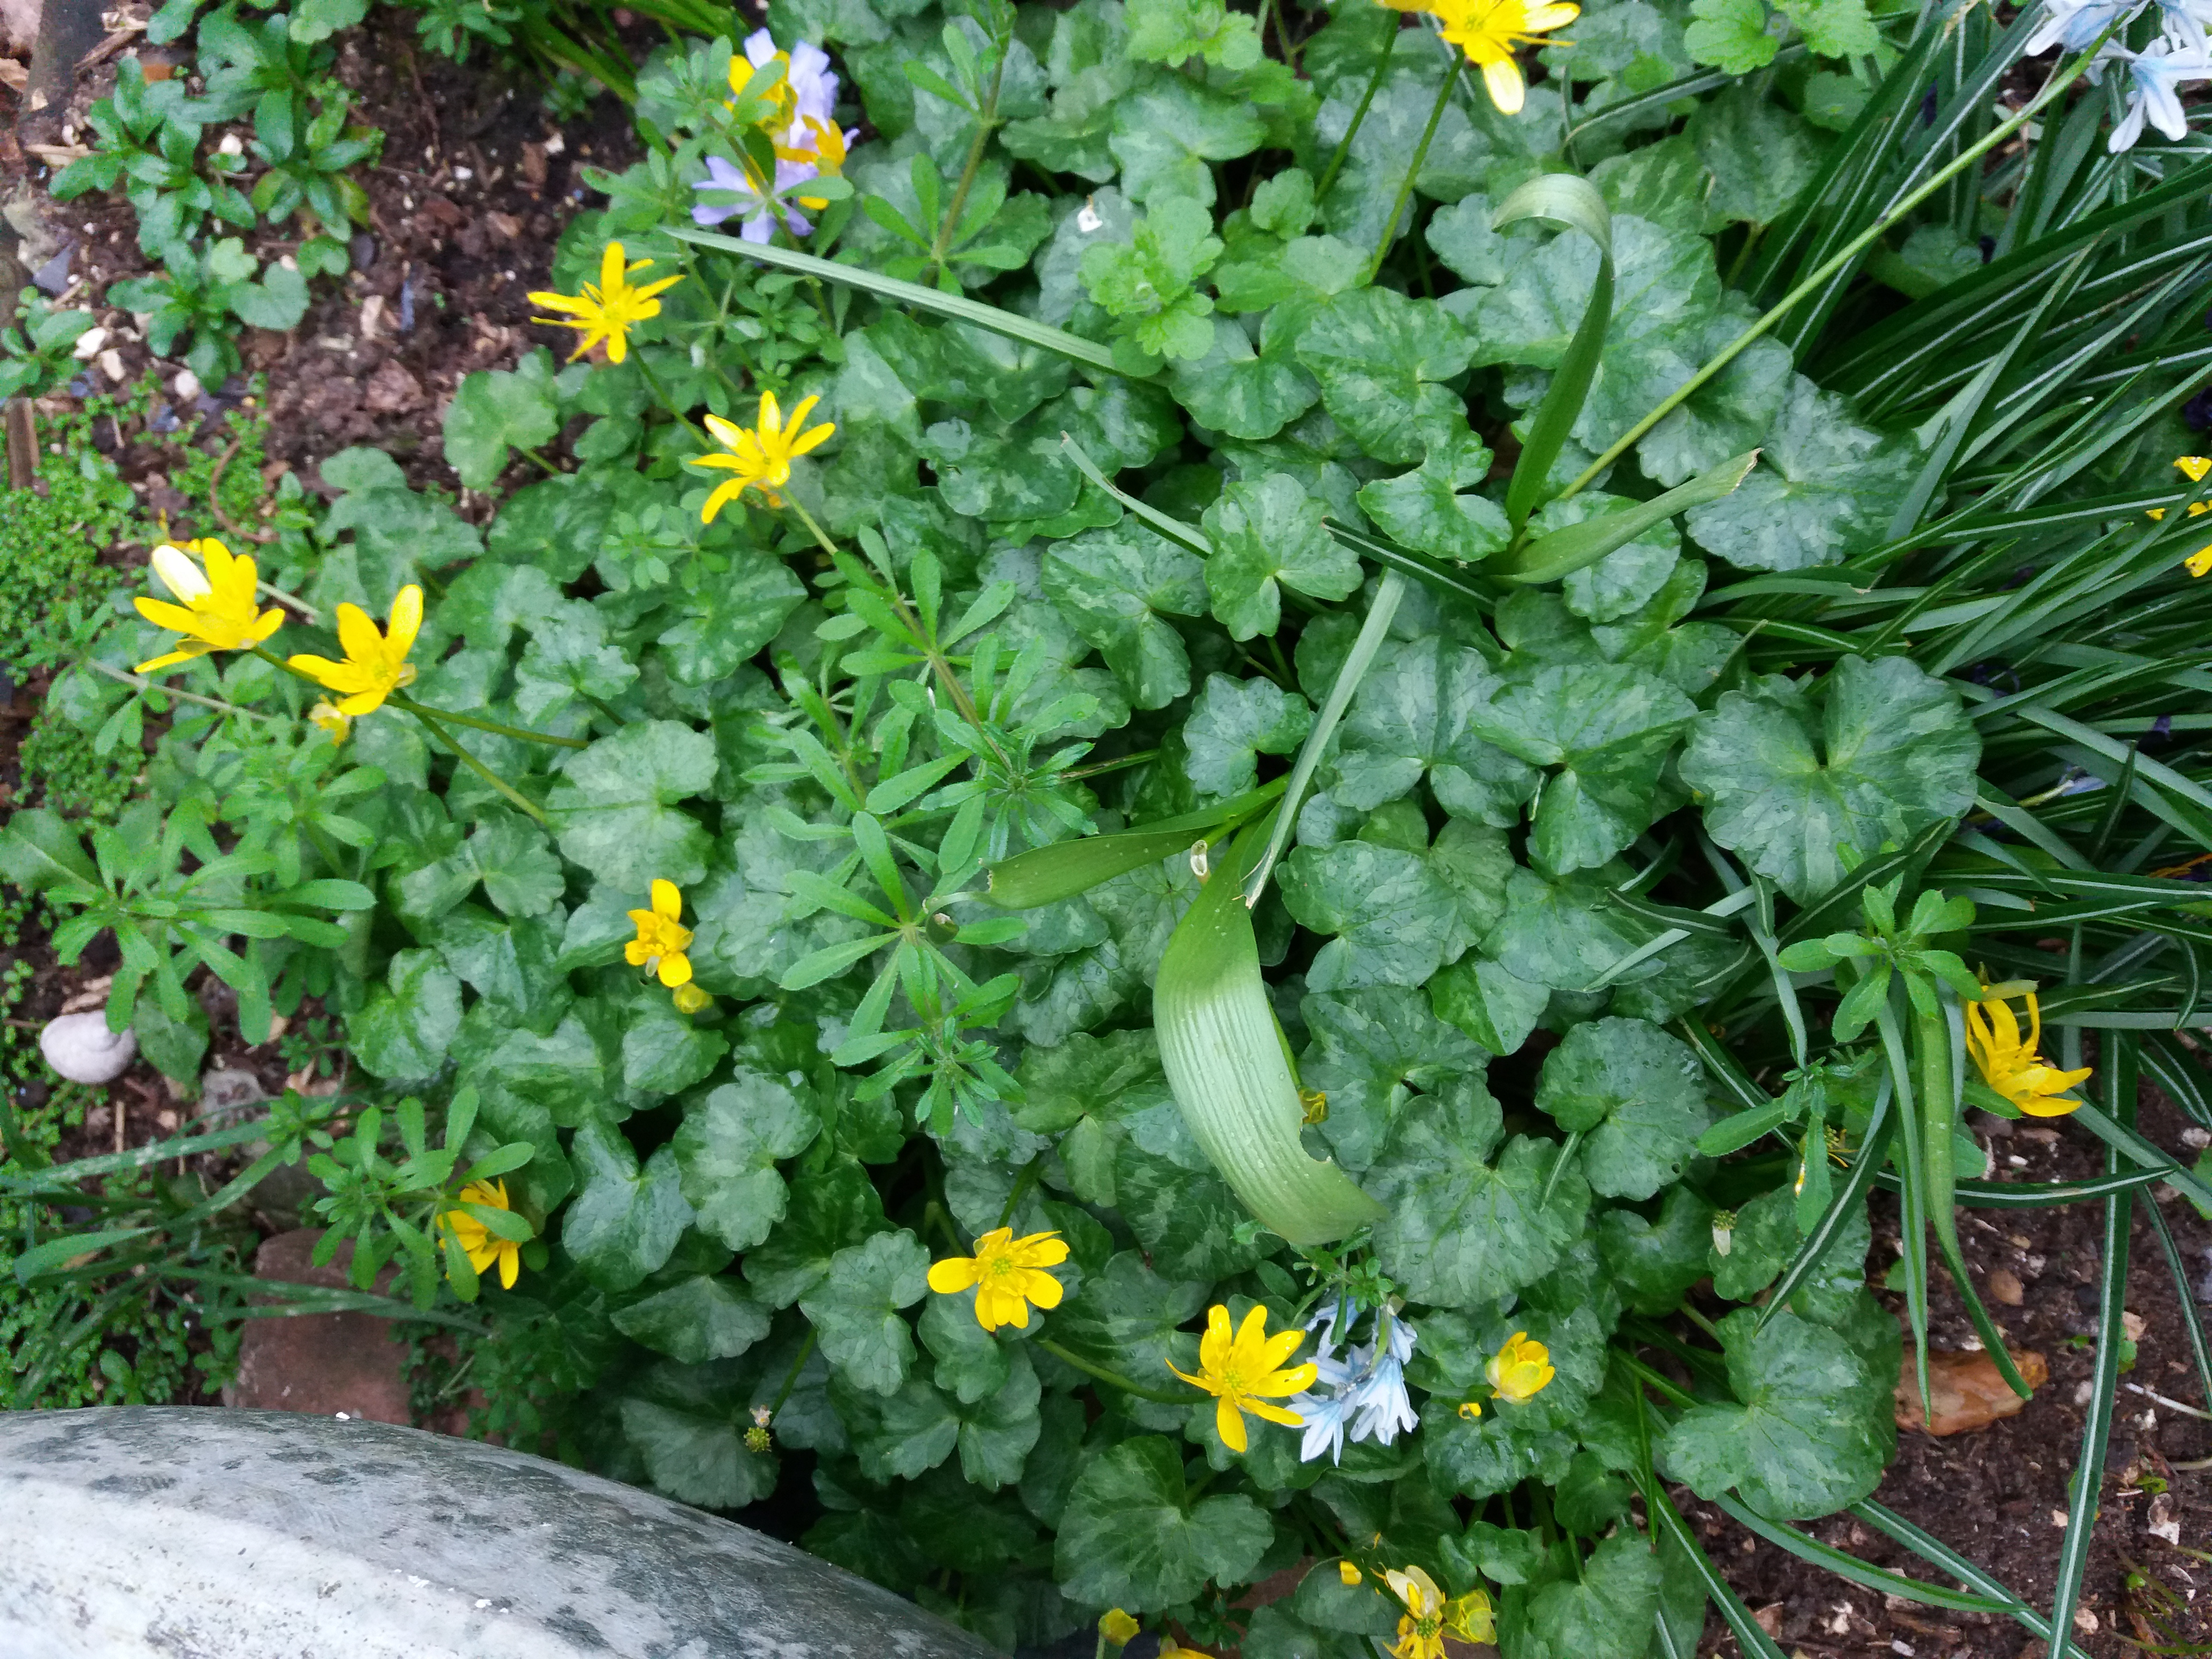 What Are These Plants Is The Yellow One A Weed Forum